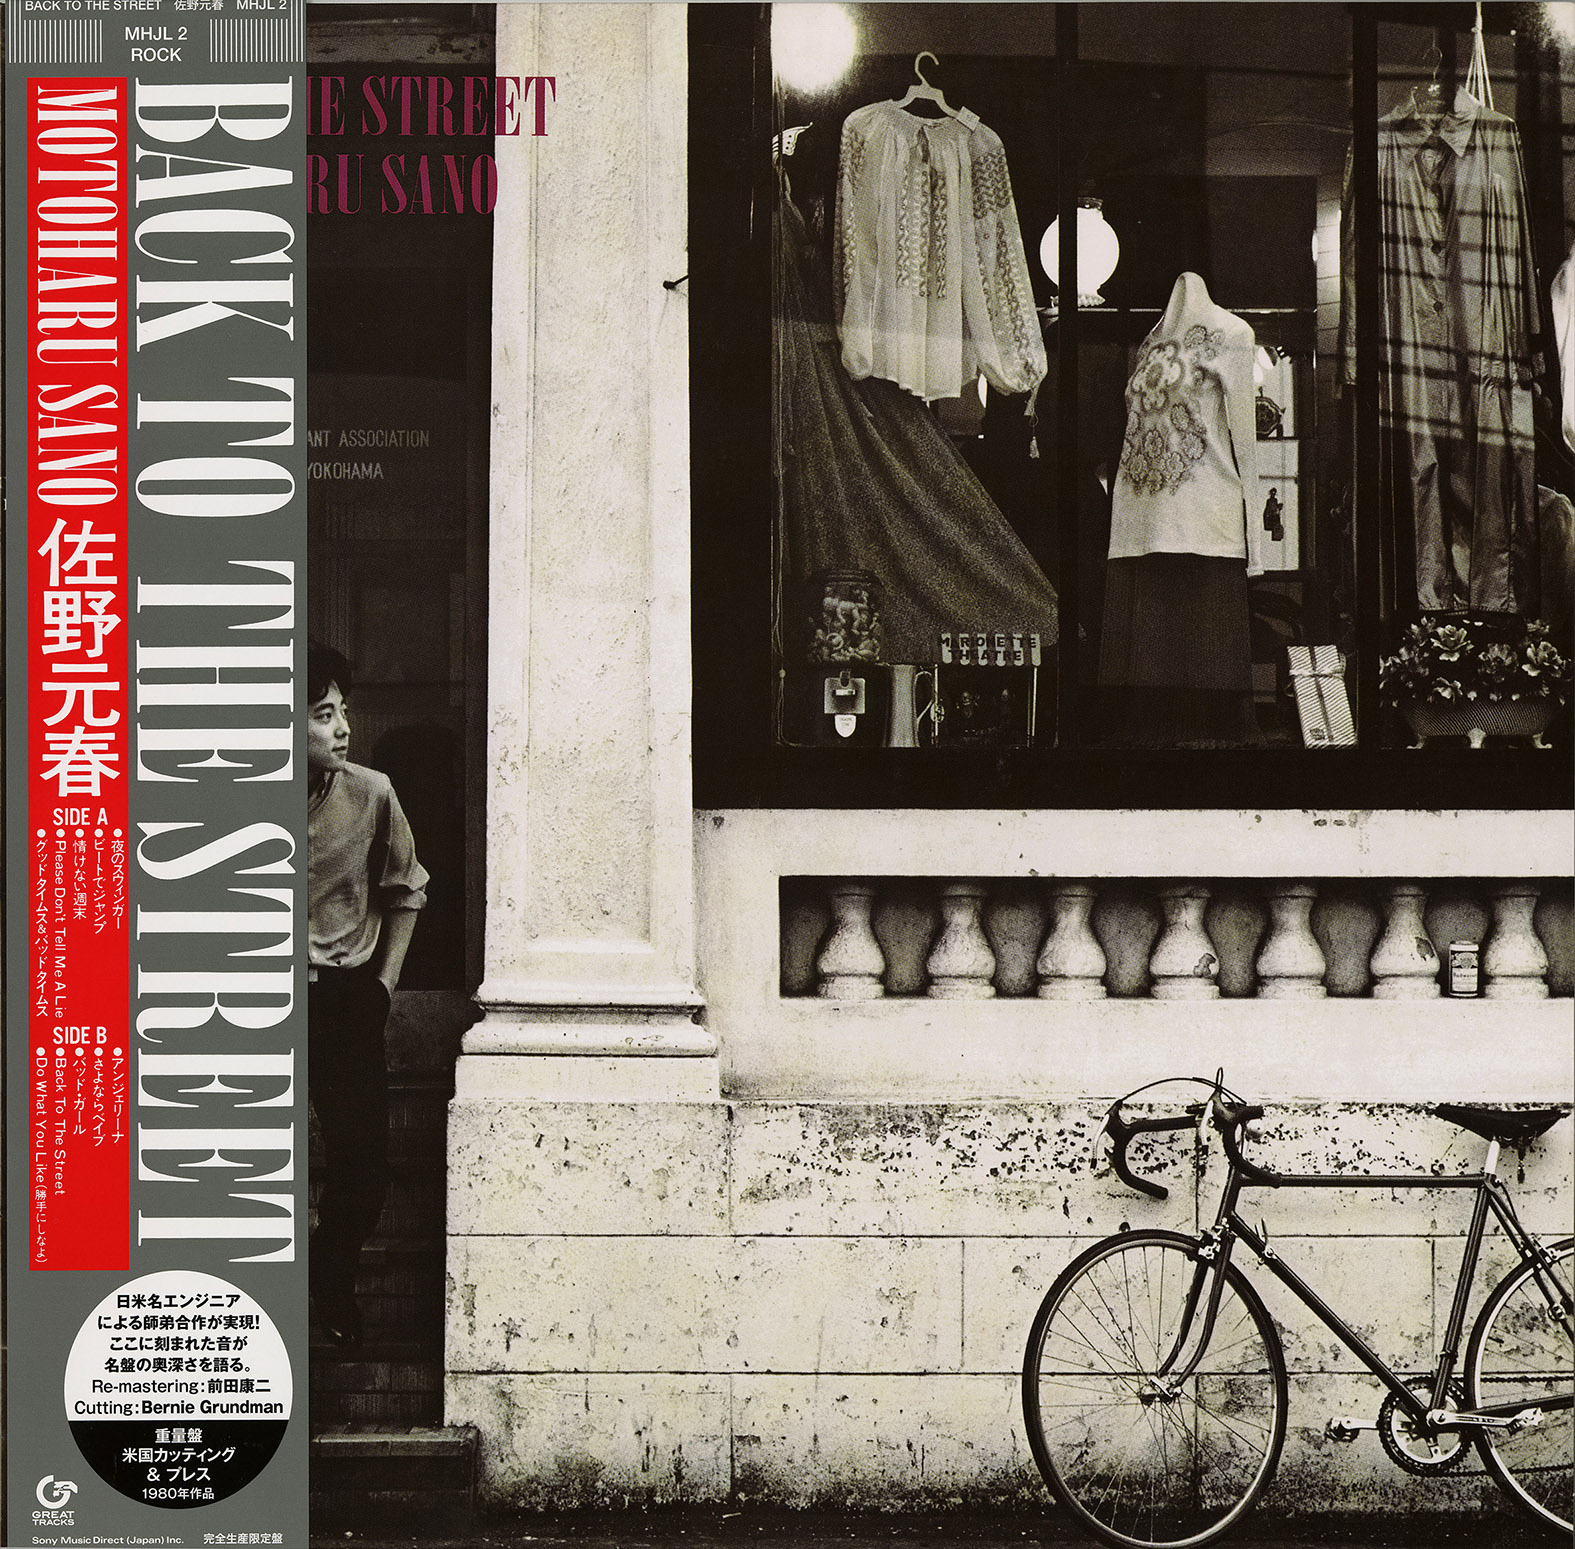 LP『BACK TO THE STREET』